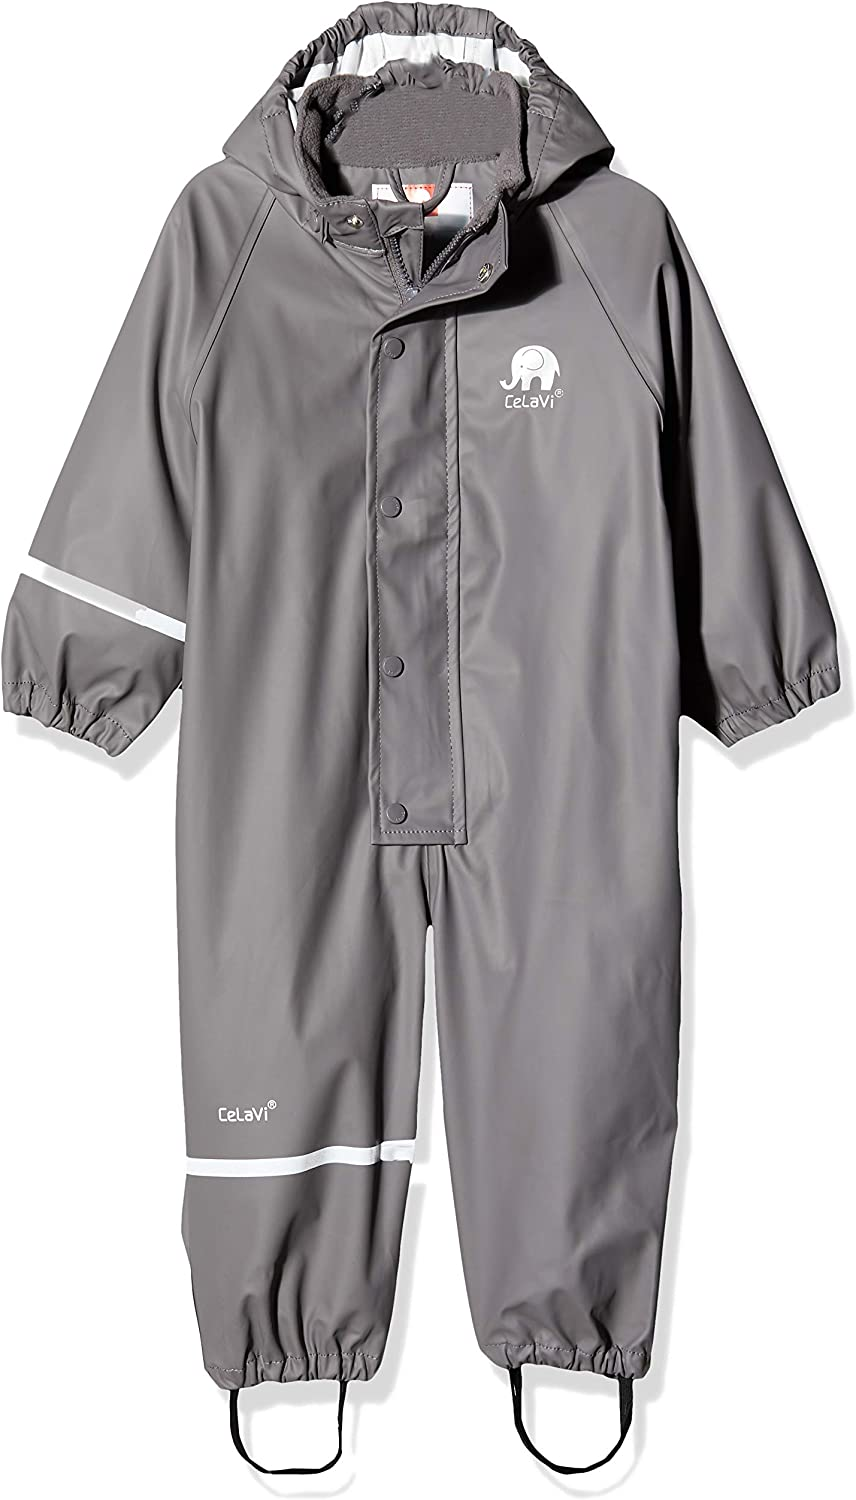 Celavi by Scandinavian Kidz Kids RainGear Boy-Girl-Unisex 3 Colors, Size 12 Mo.-5 Yrs